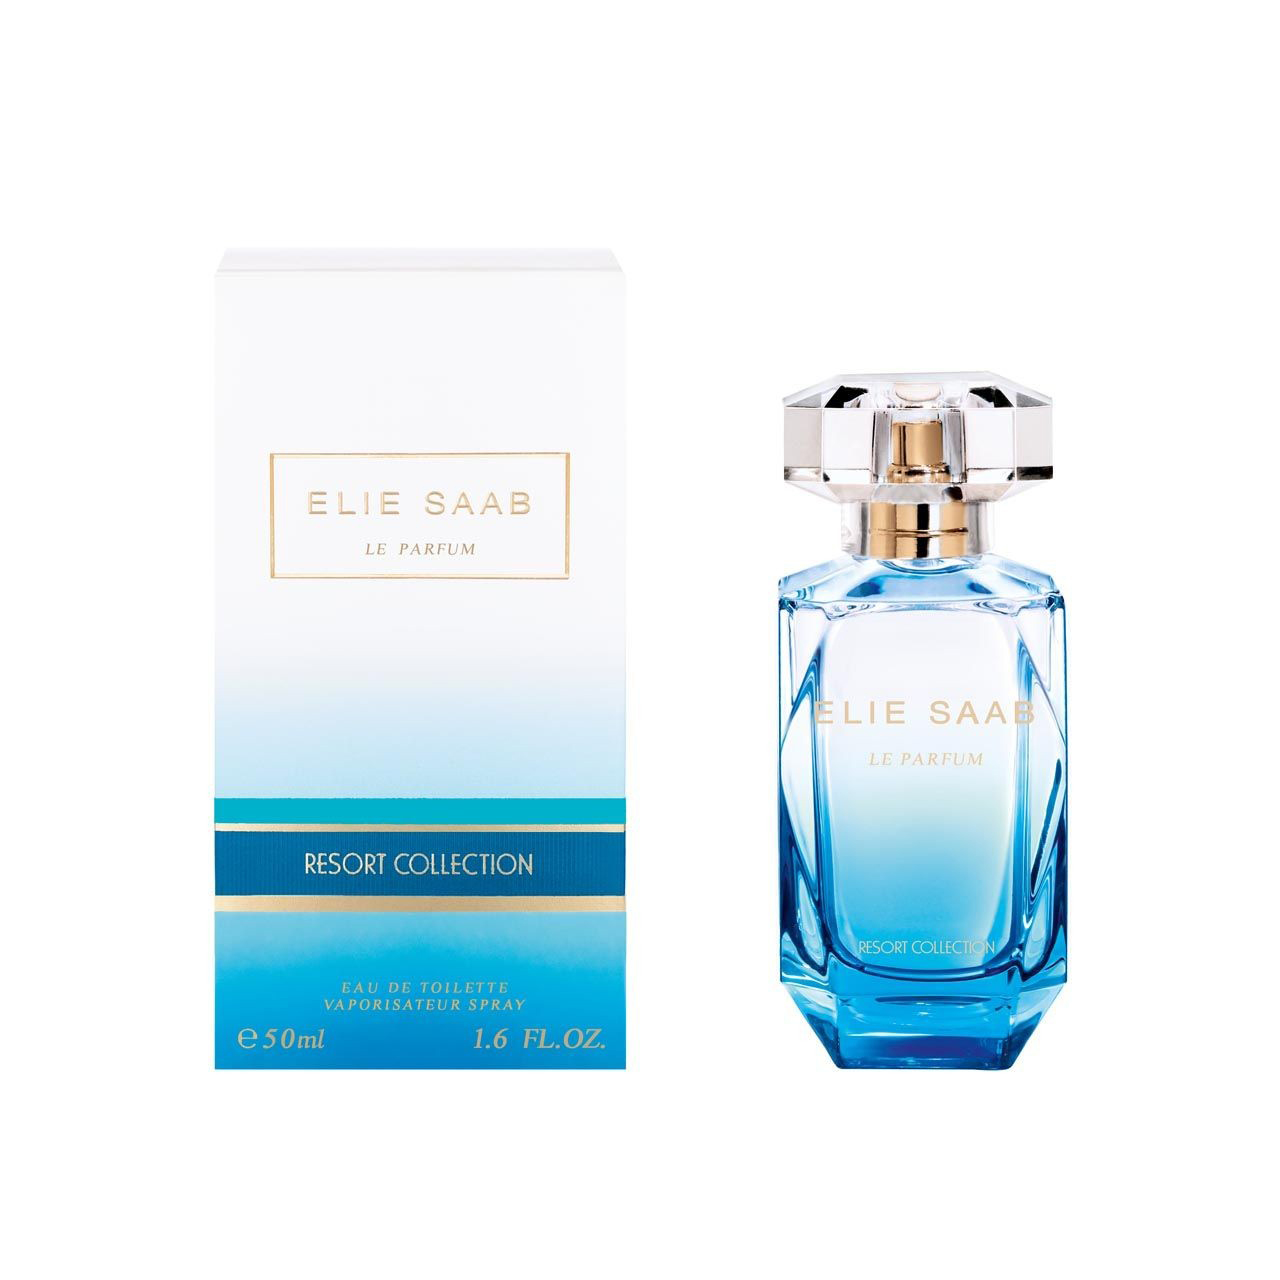 Apa de toaleta Elie Saab Le Parfum Resort Collection